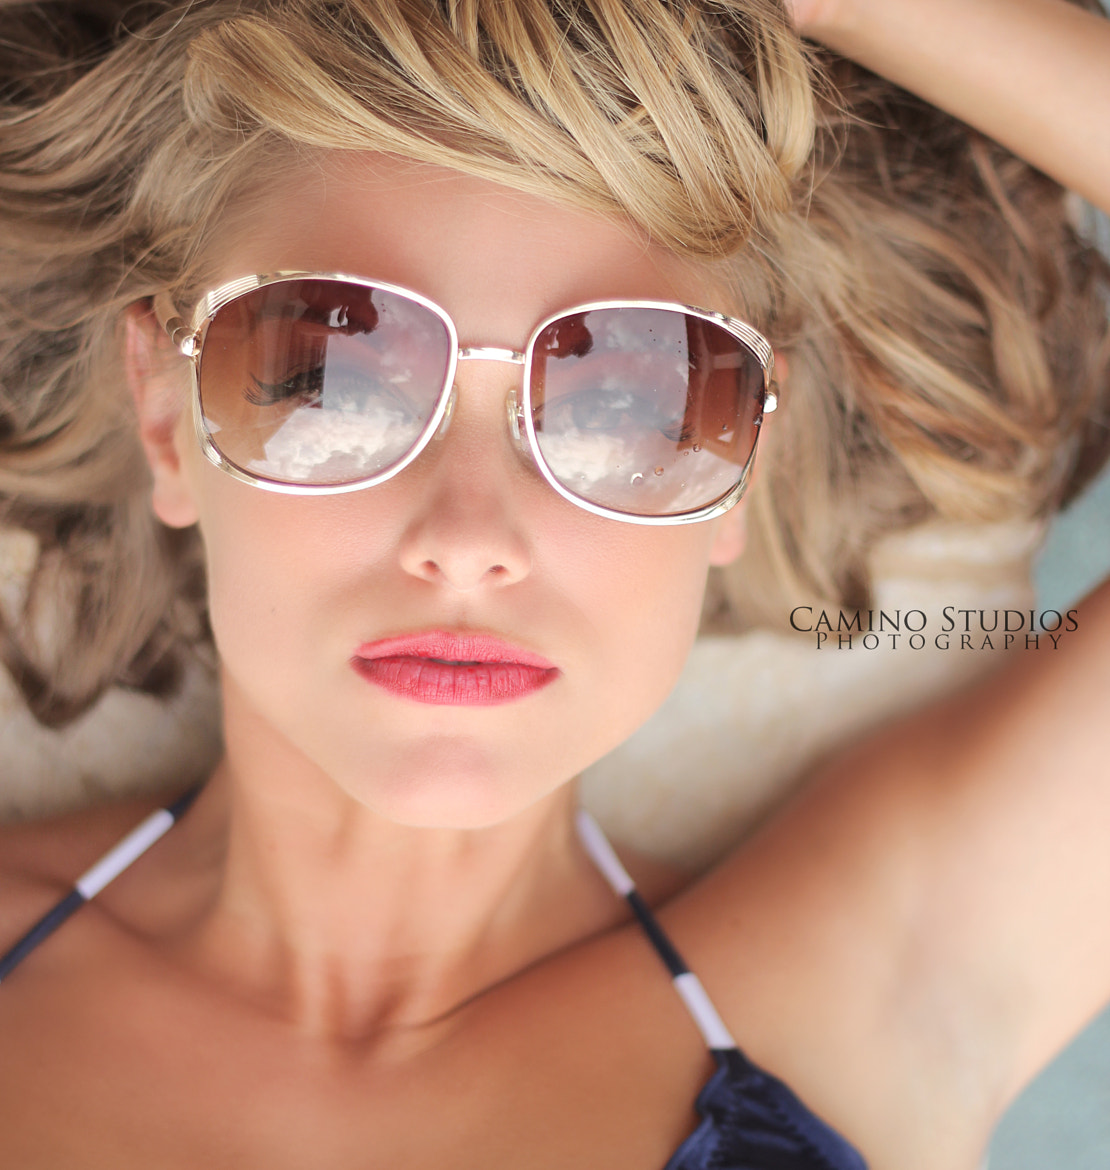 Photograph Lips by Camino studios Photography on 500px